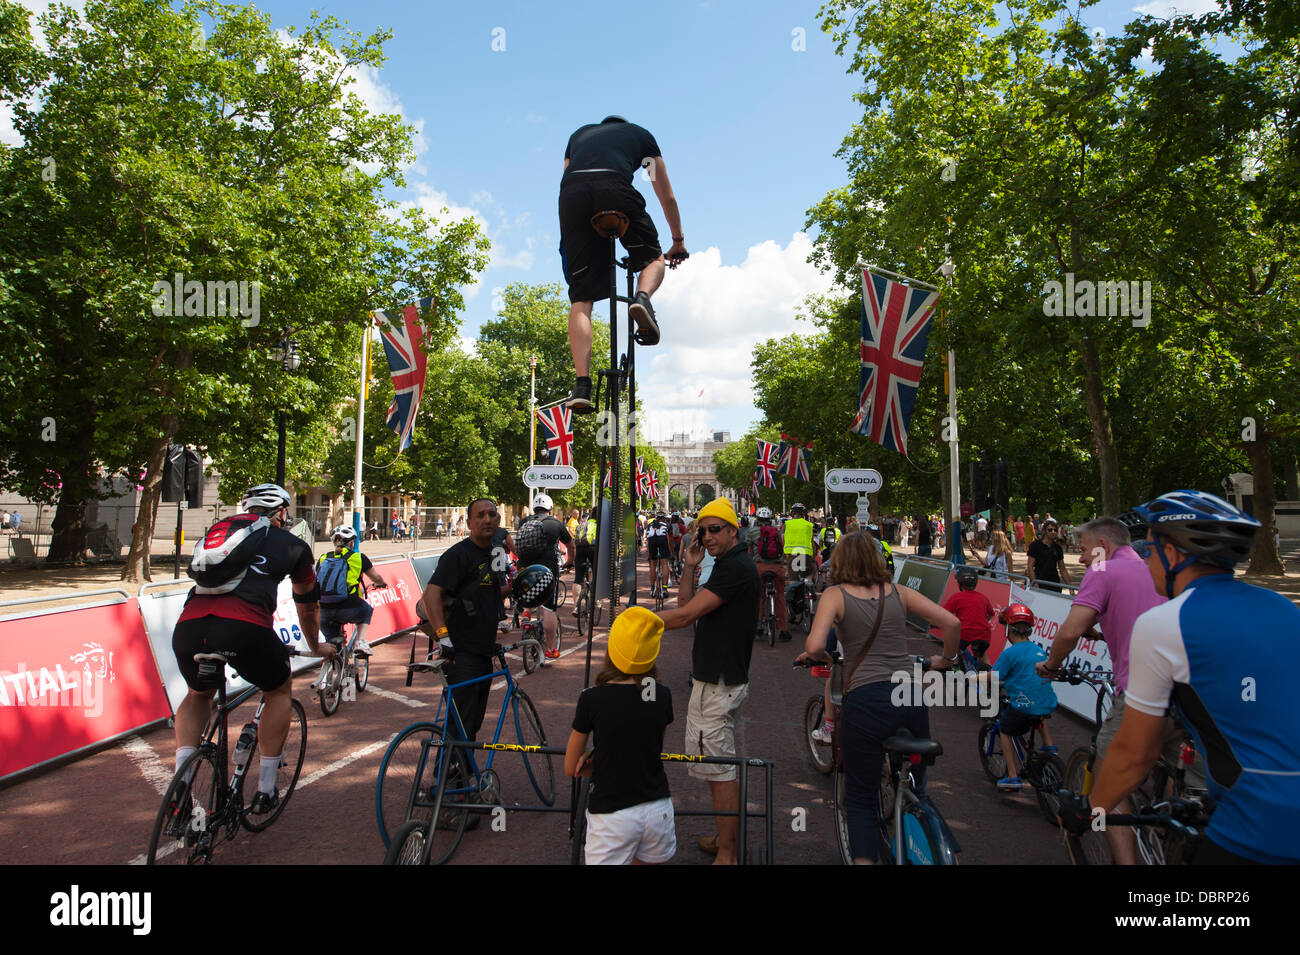 London, UK. 03rd Aug, 2013. Participants in the Freecycle event for everyone with a tall bicycle on The Mall Credit: - Stock Image